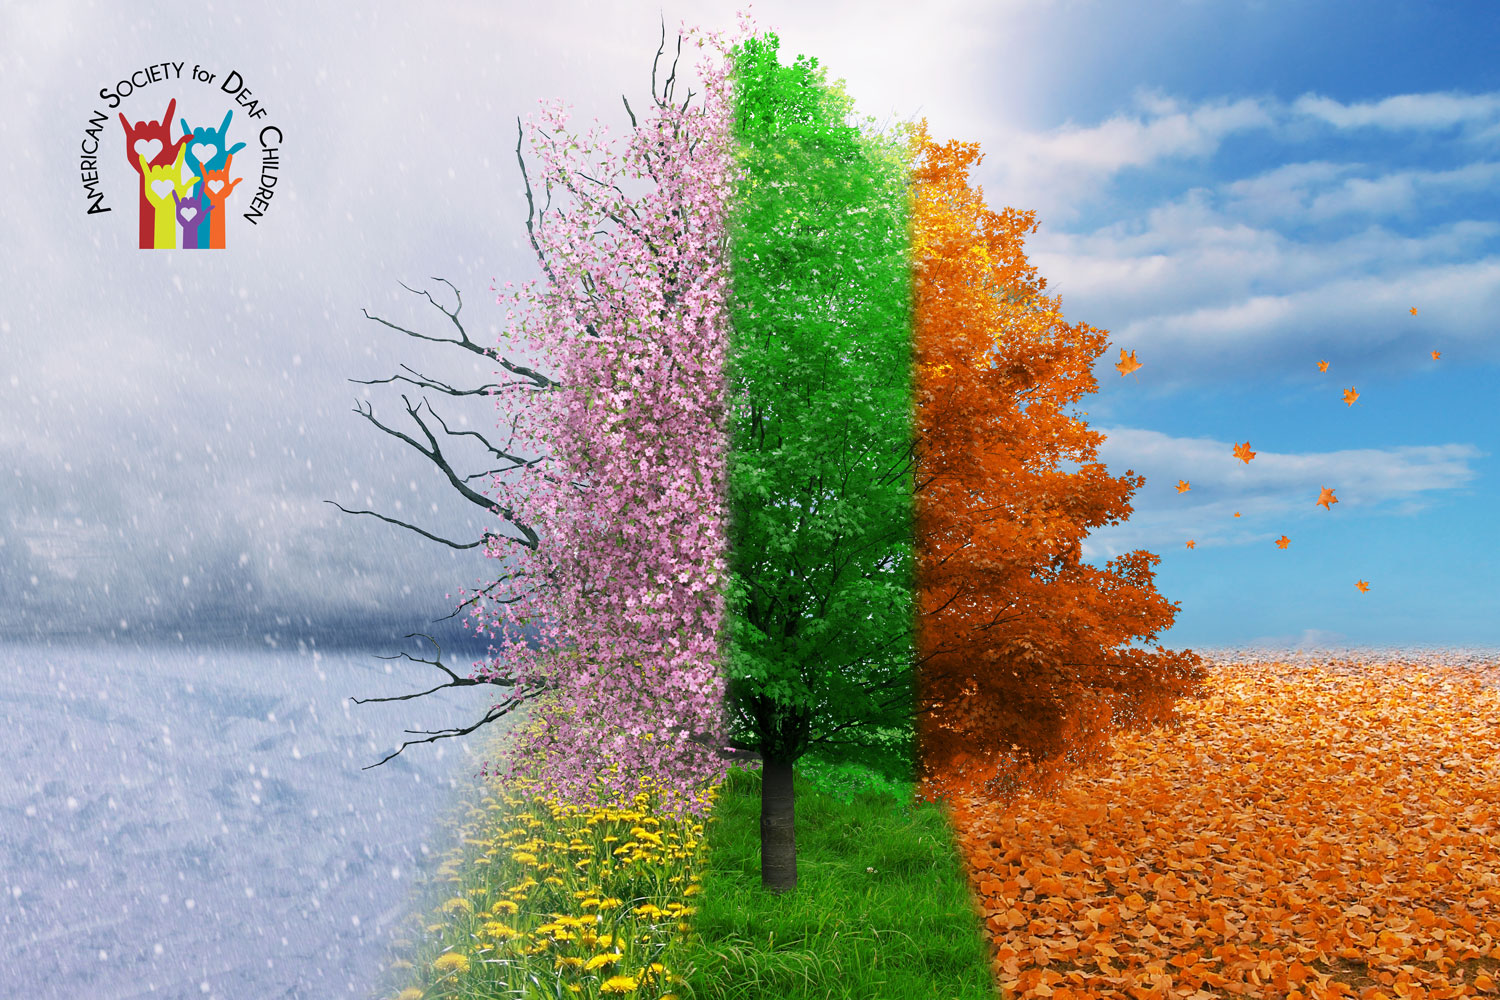 image shows a tree divided into four sections with each representing a different season